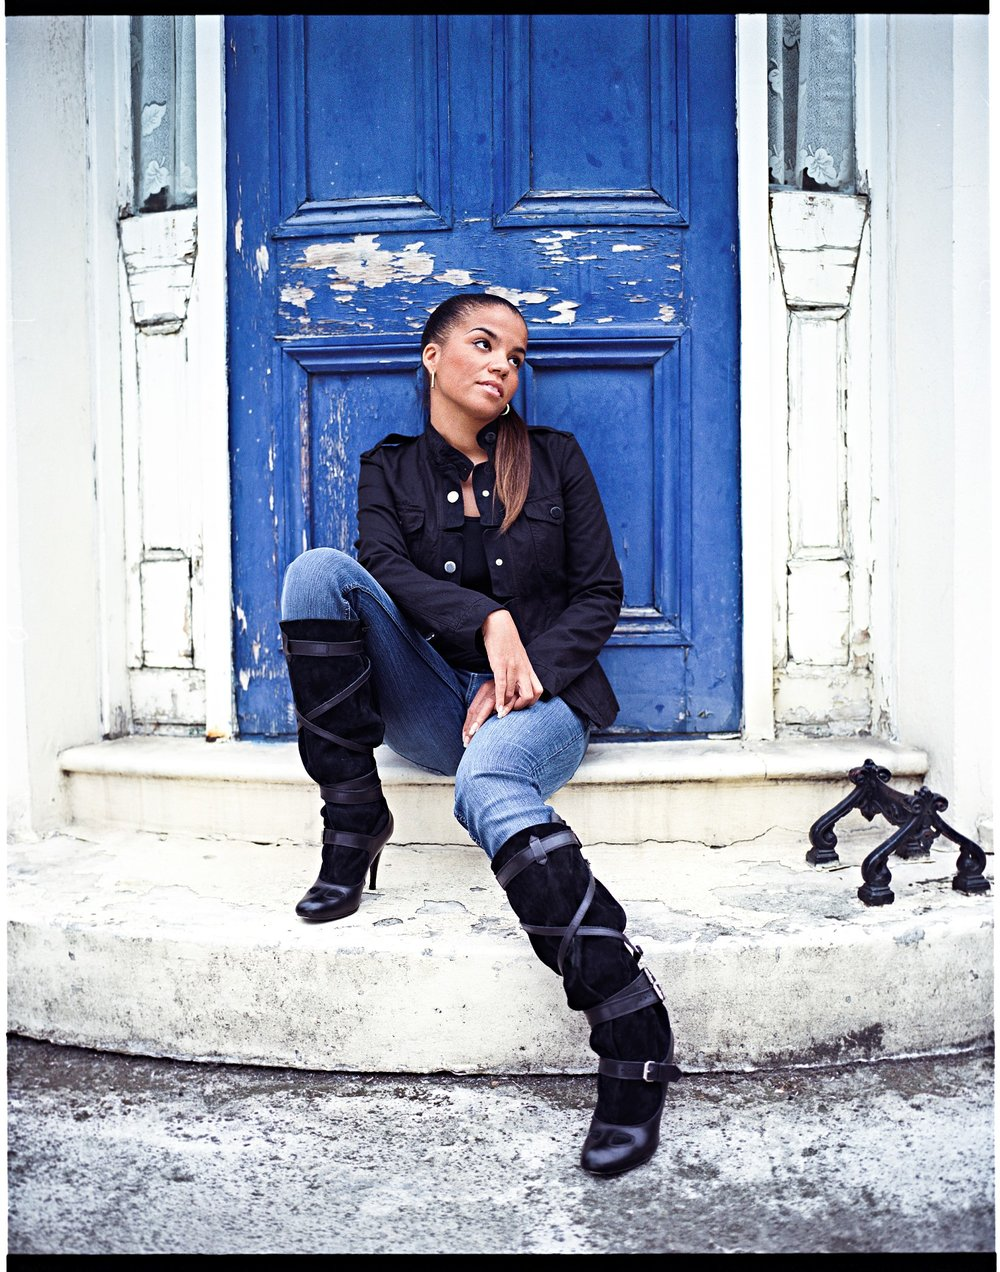 Ms. Dynamite, photographed for the Black Britannia photo exhibition.